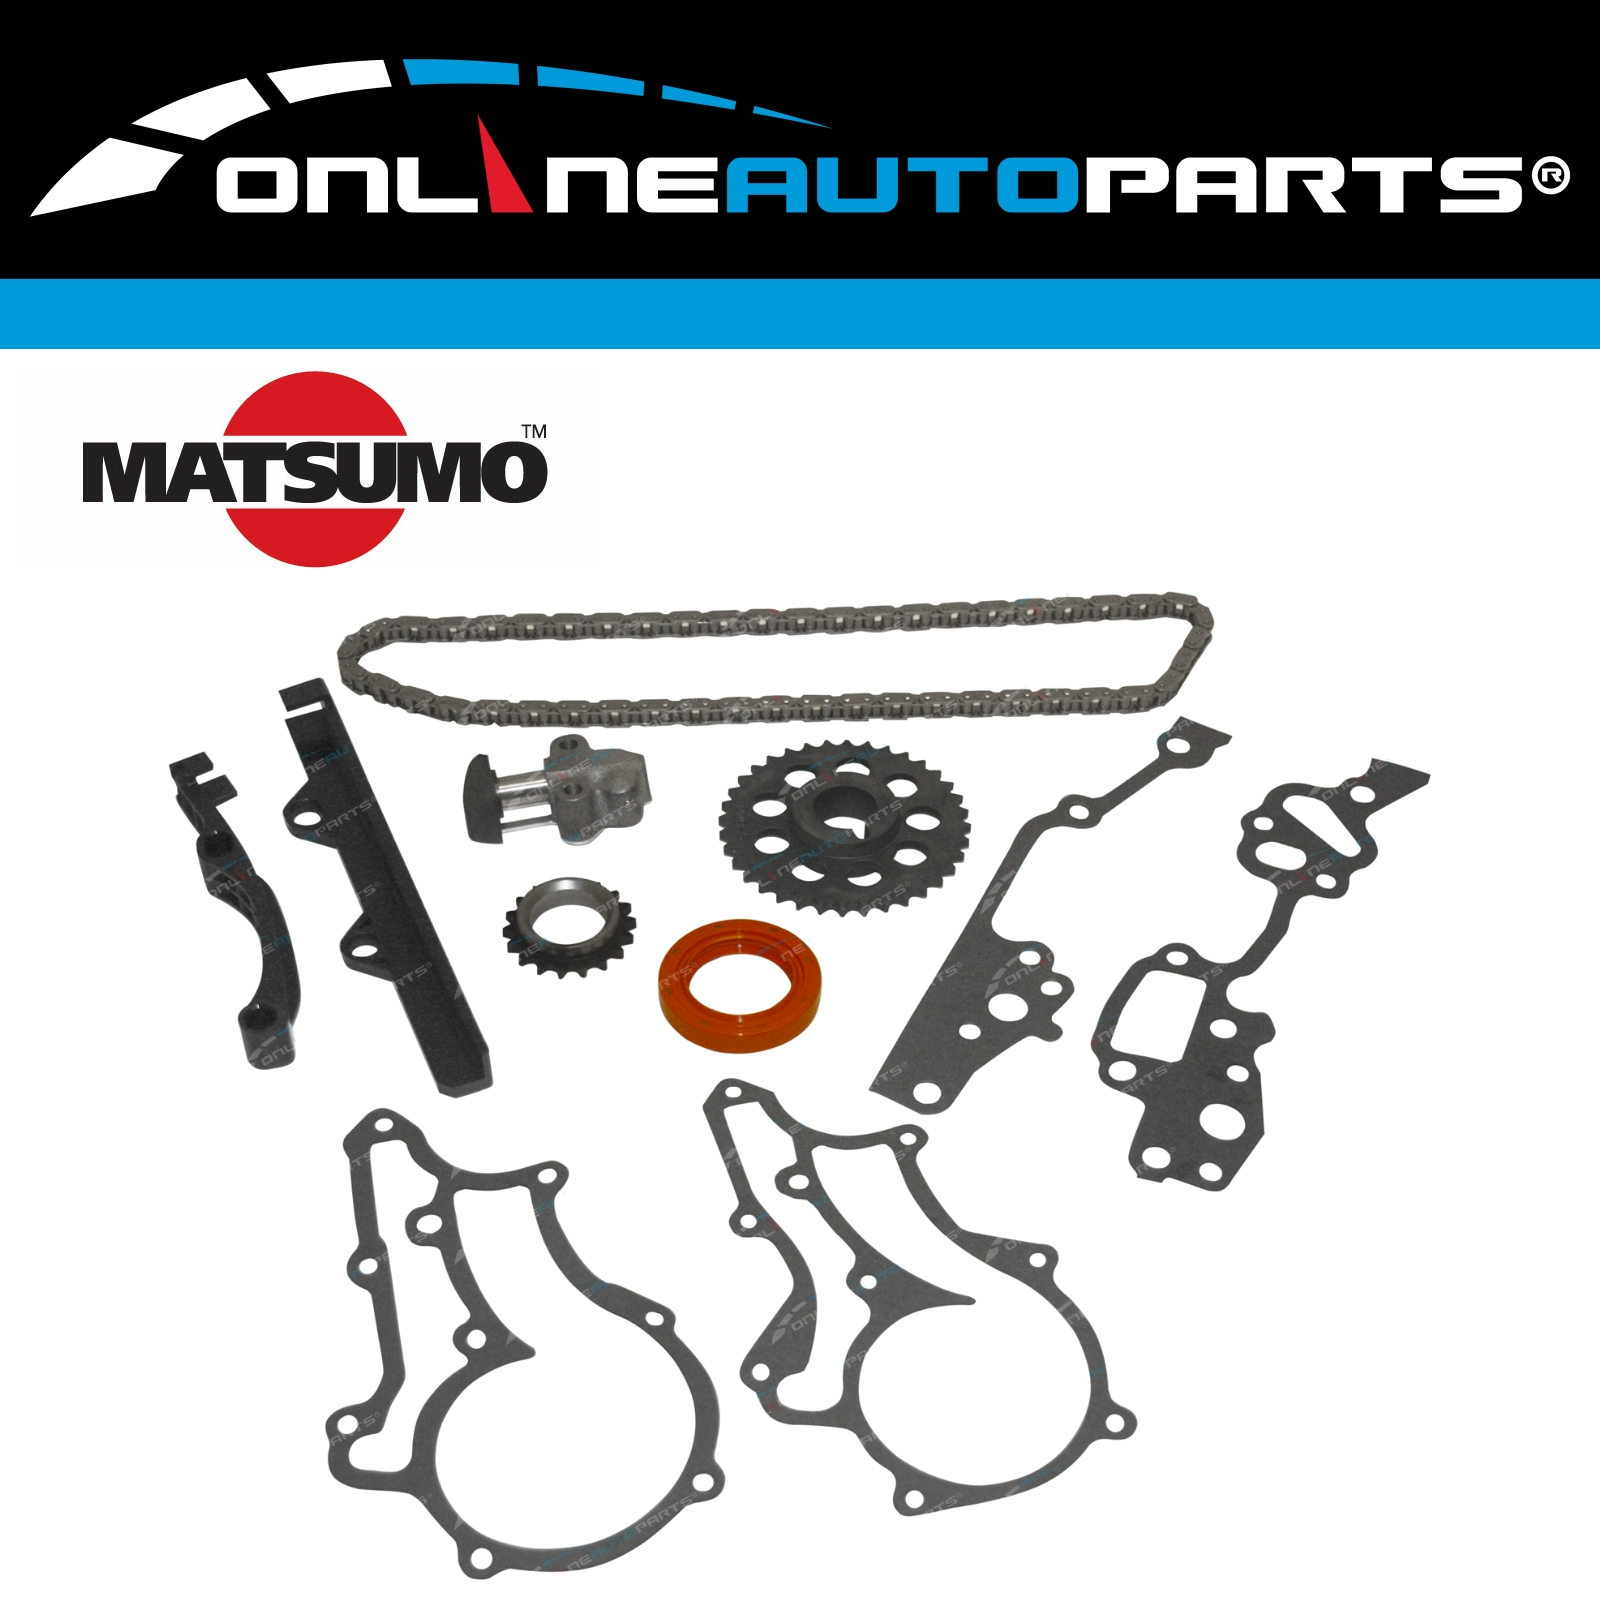 Details about Timing Chain Tensioner Gears Guides Kit suits Landcruiser  Bundera RJ70 22R 22RE